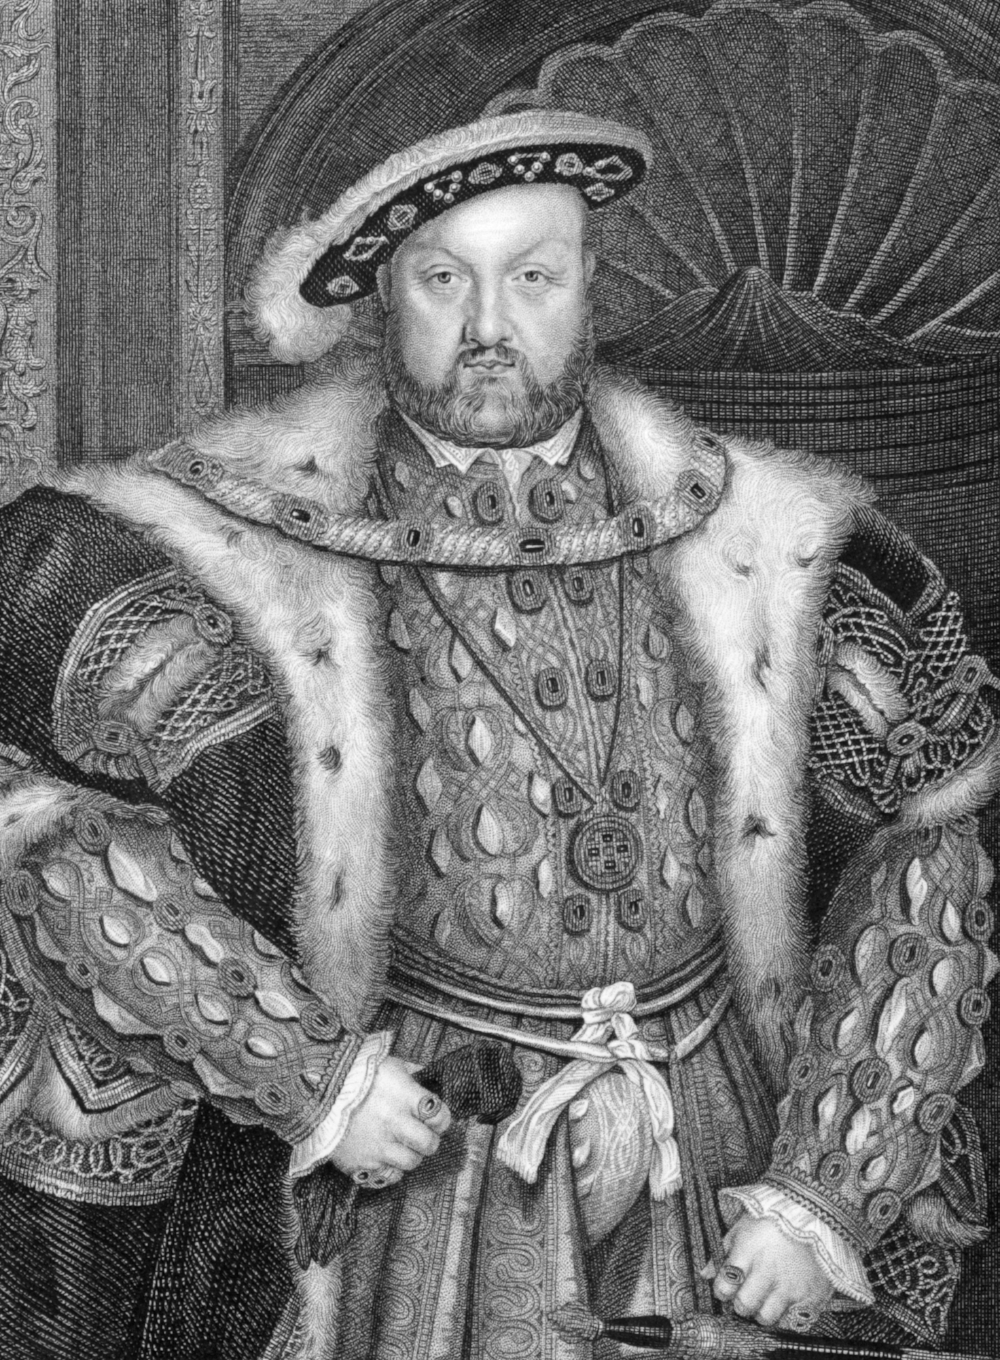 King Henry VIII separated England from the Catholic Church and founded the Church of England.